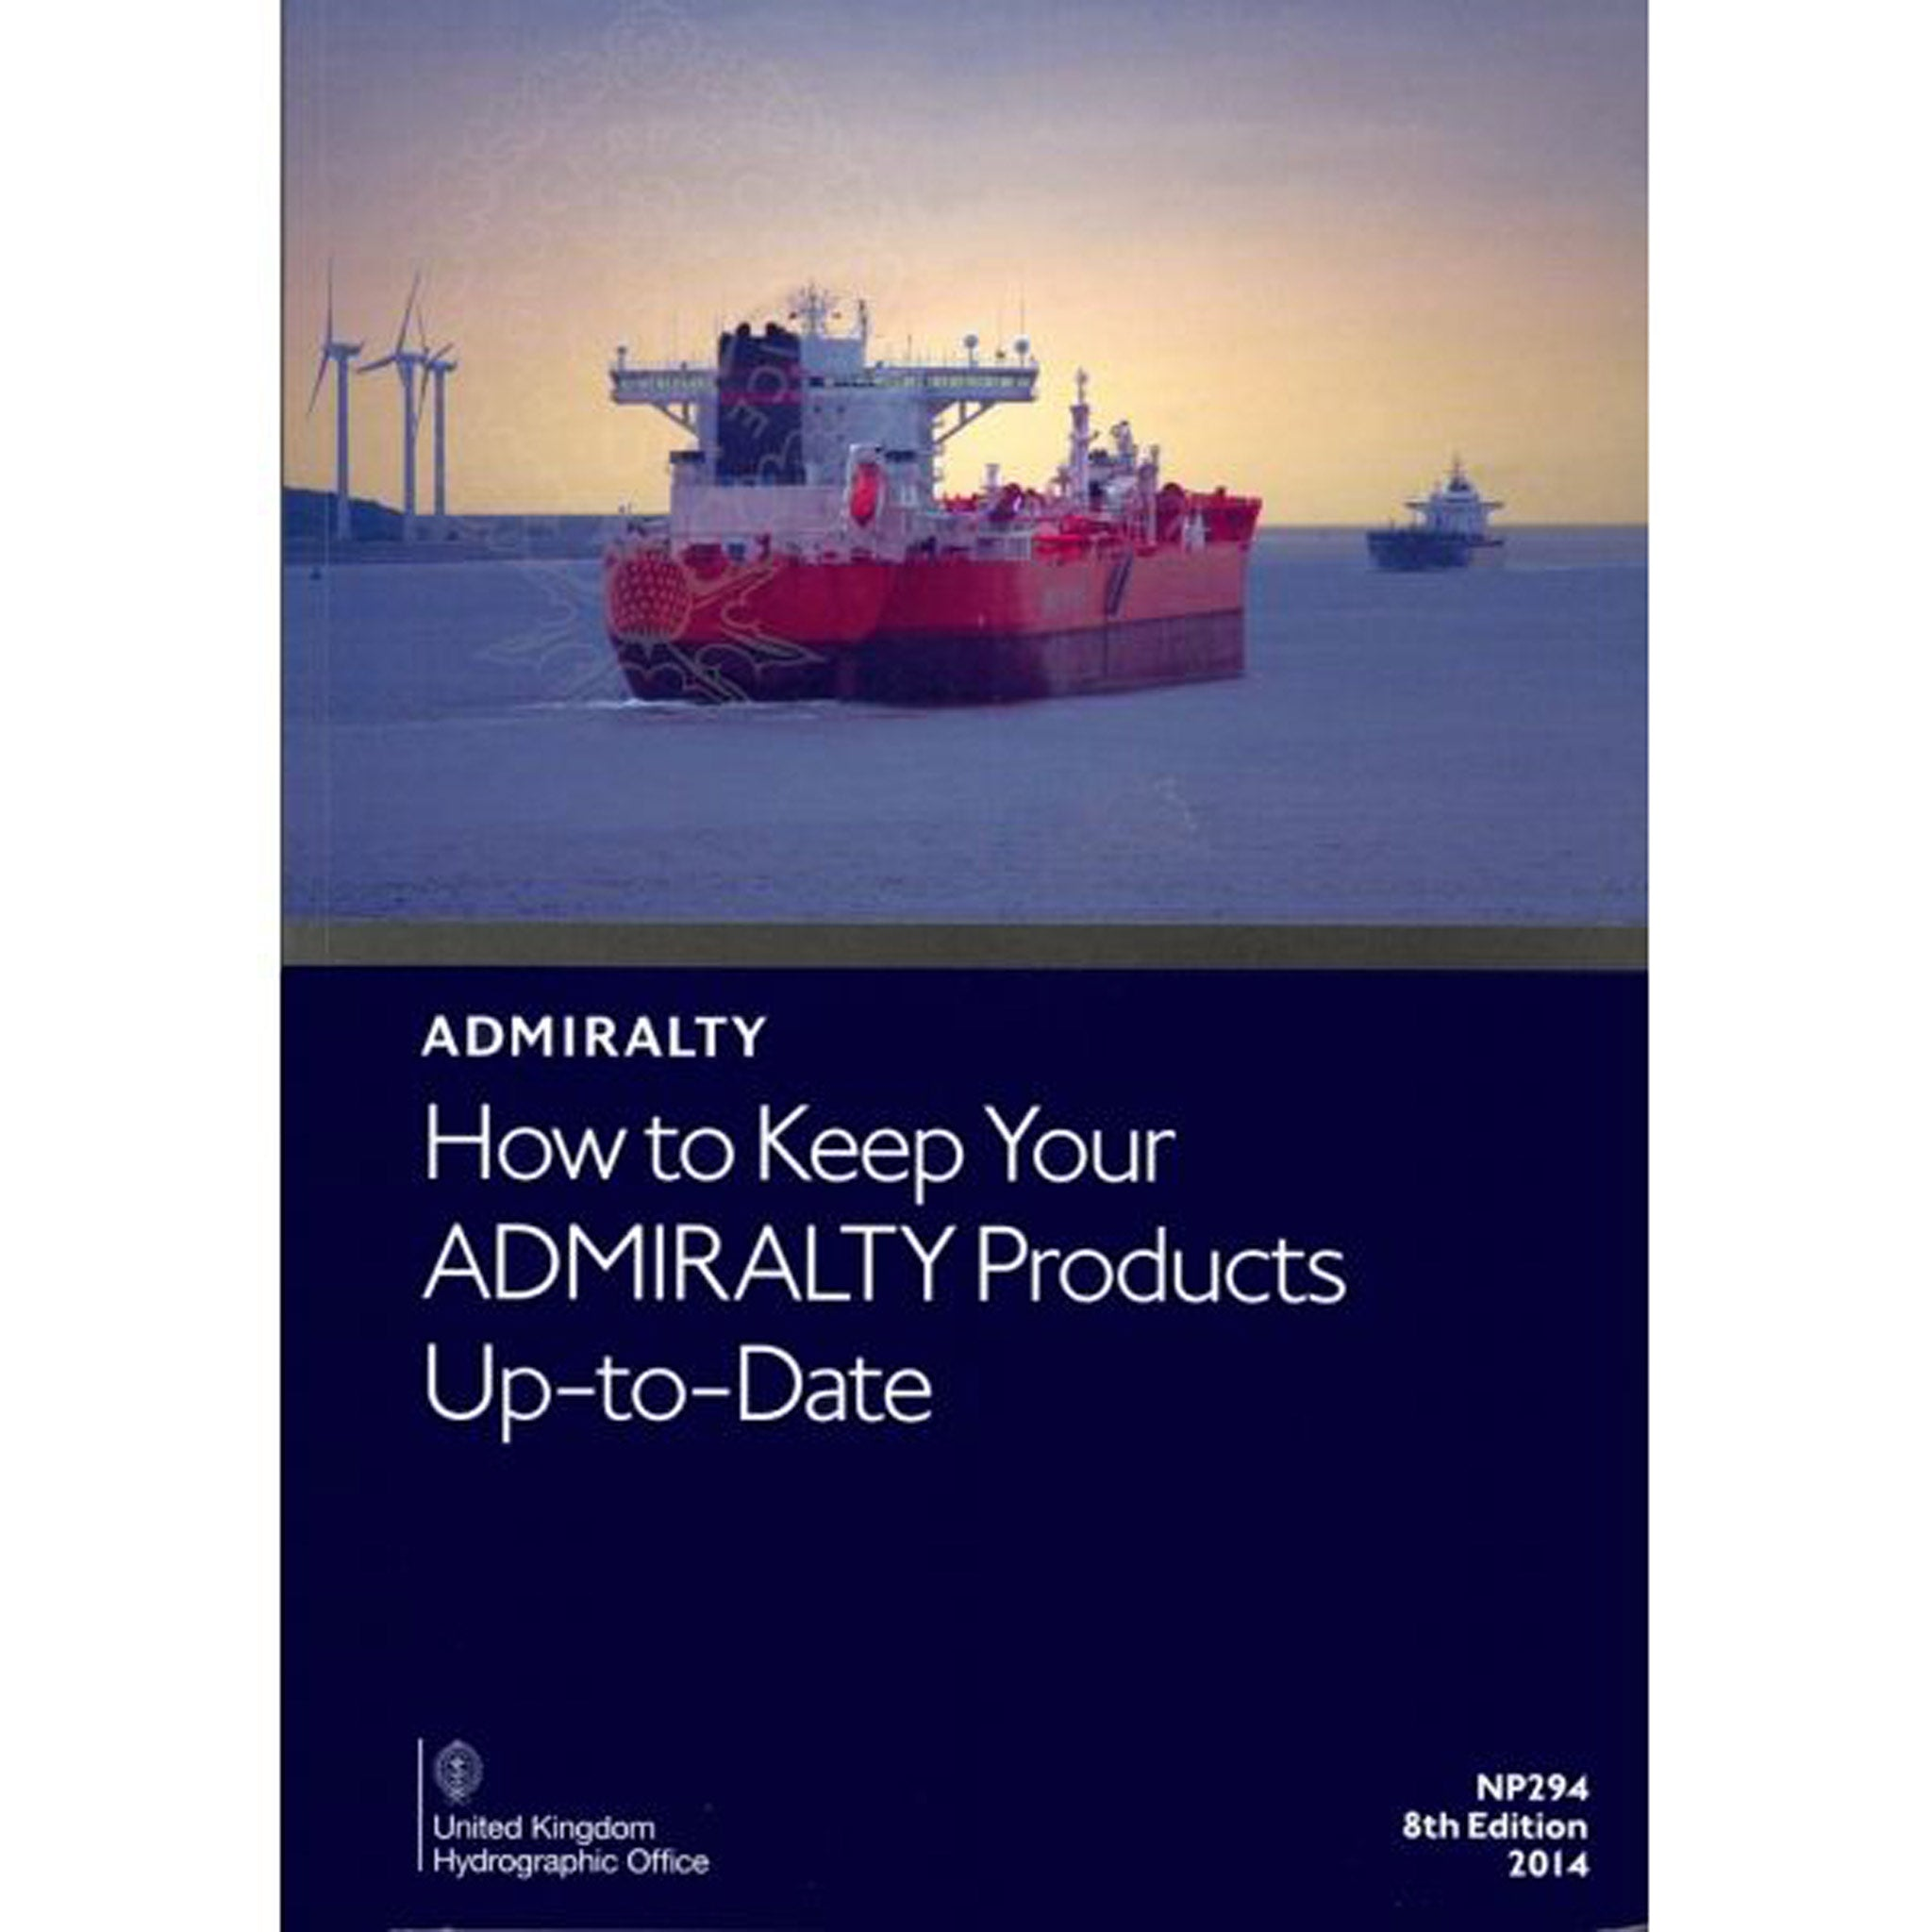 Admiralty How to Keep Your Admiralty Products Up to Date